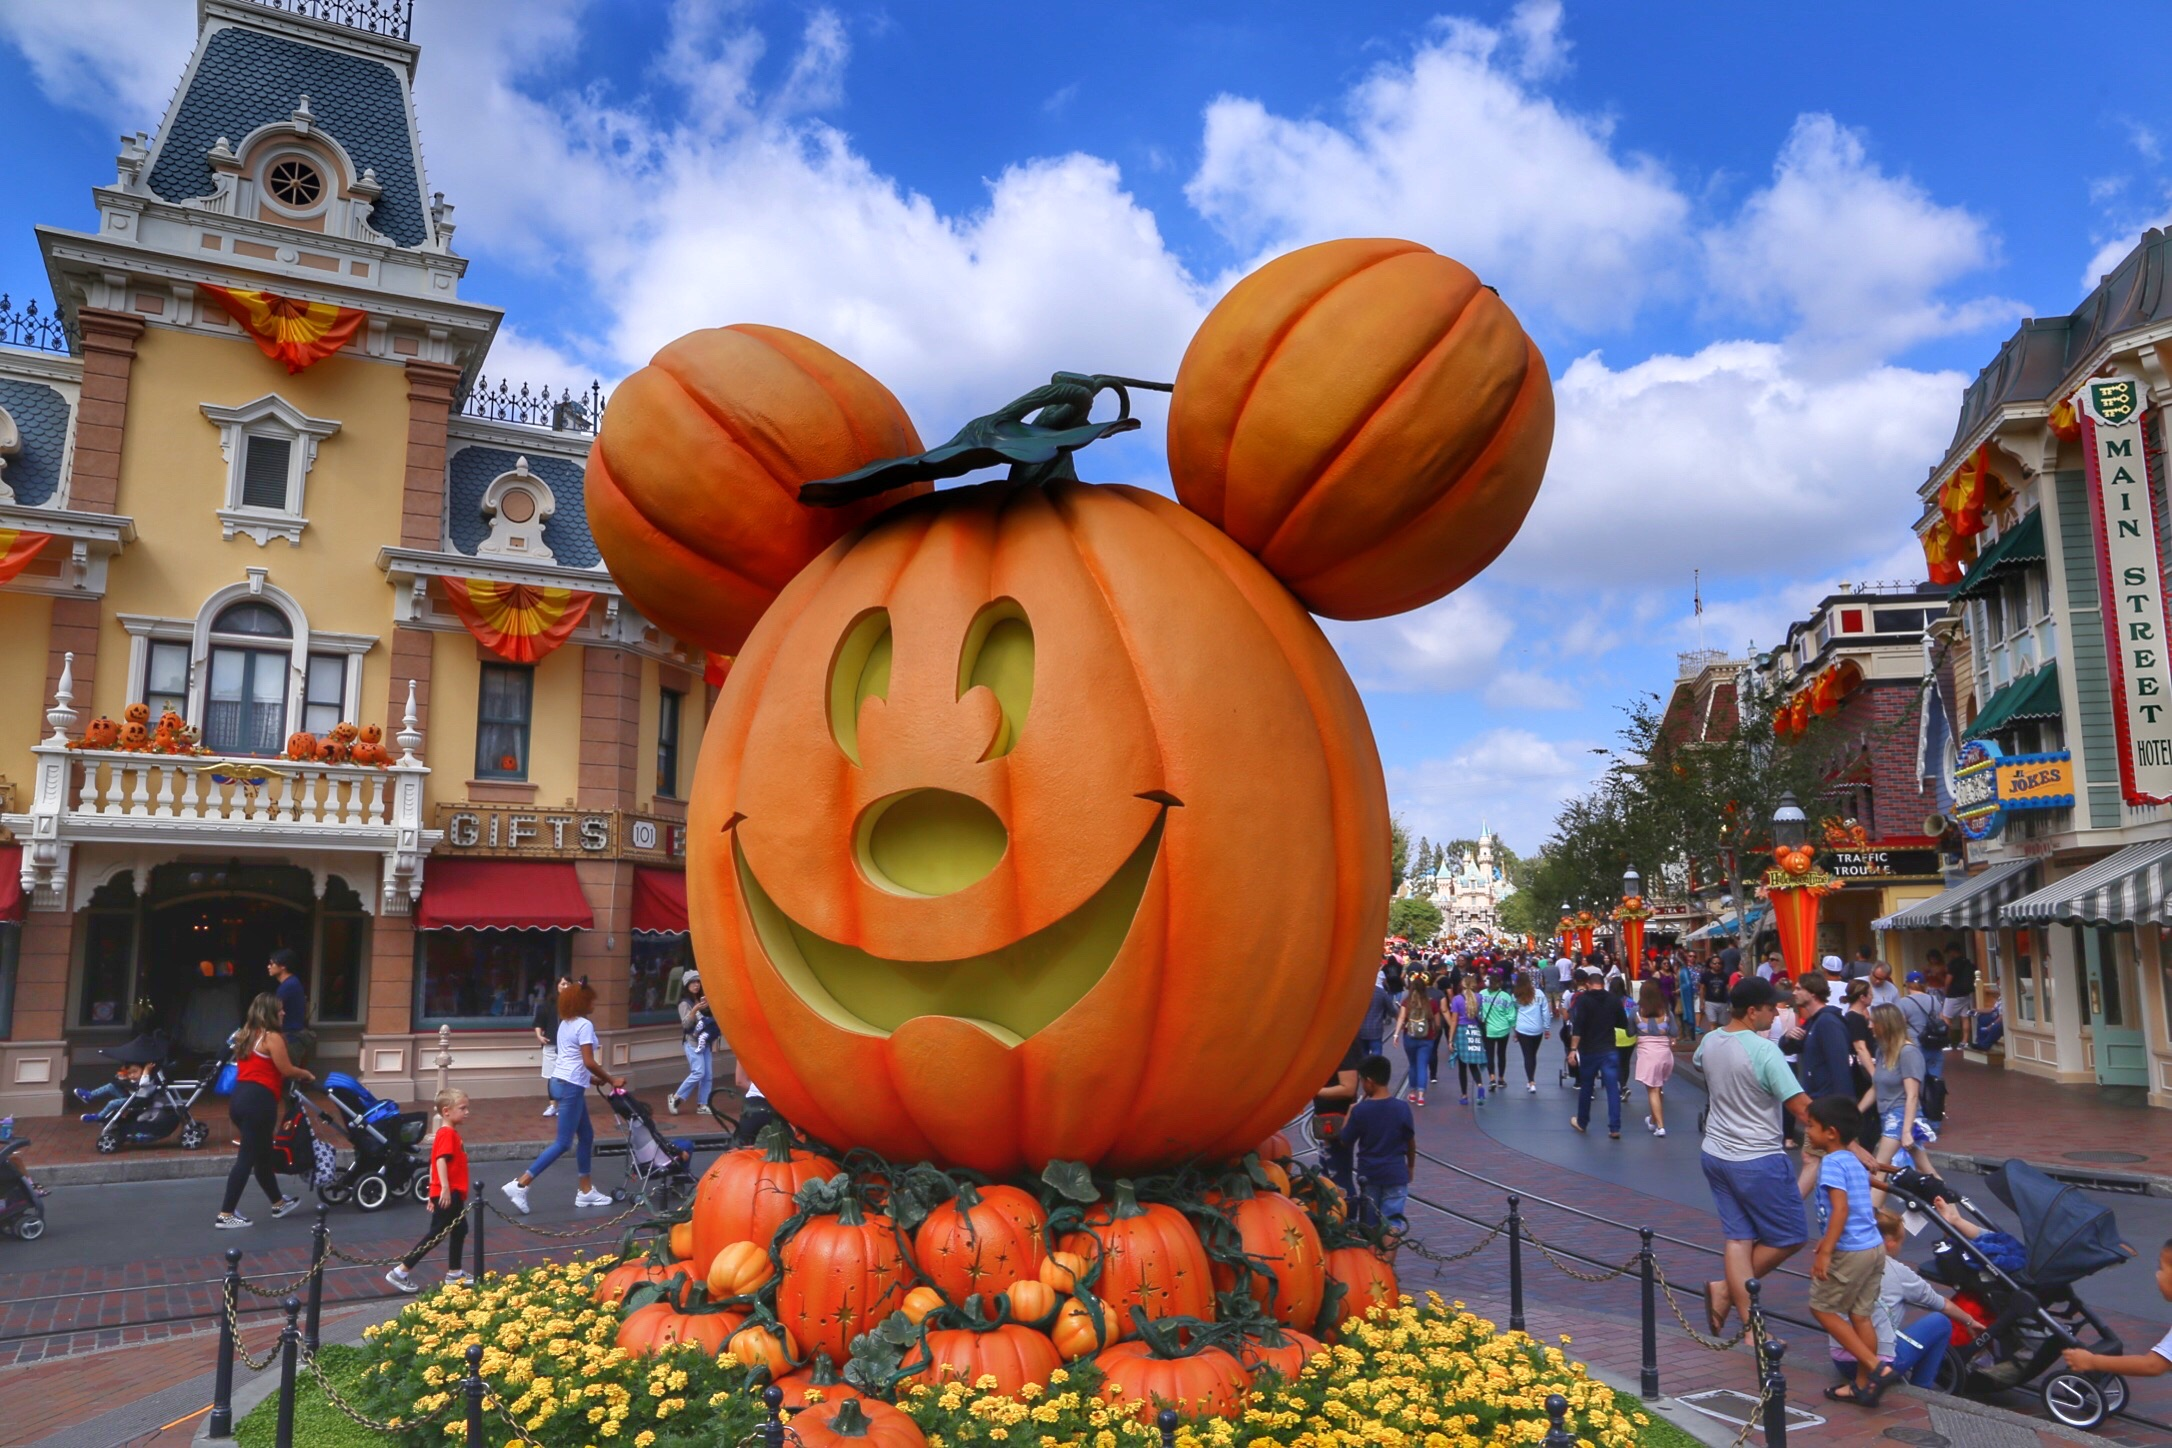 Take a look at Halloween Time at the Disneyland Resort: Photo Report